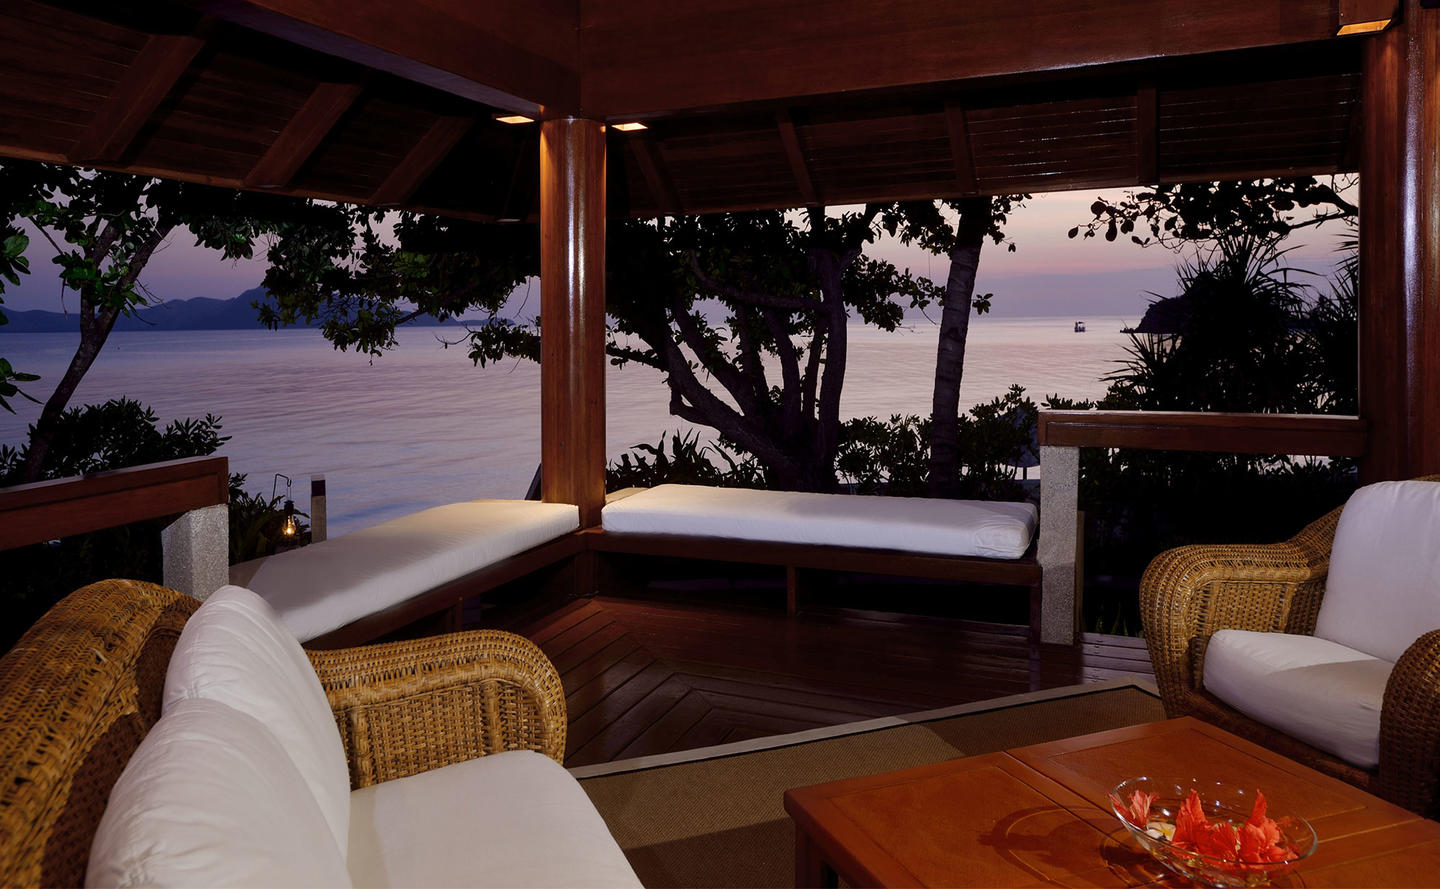 Sea Views from Terrace, One-Bedroom Villa - Amanpulo, Philippines